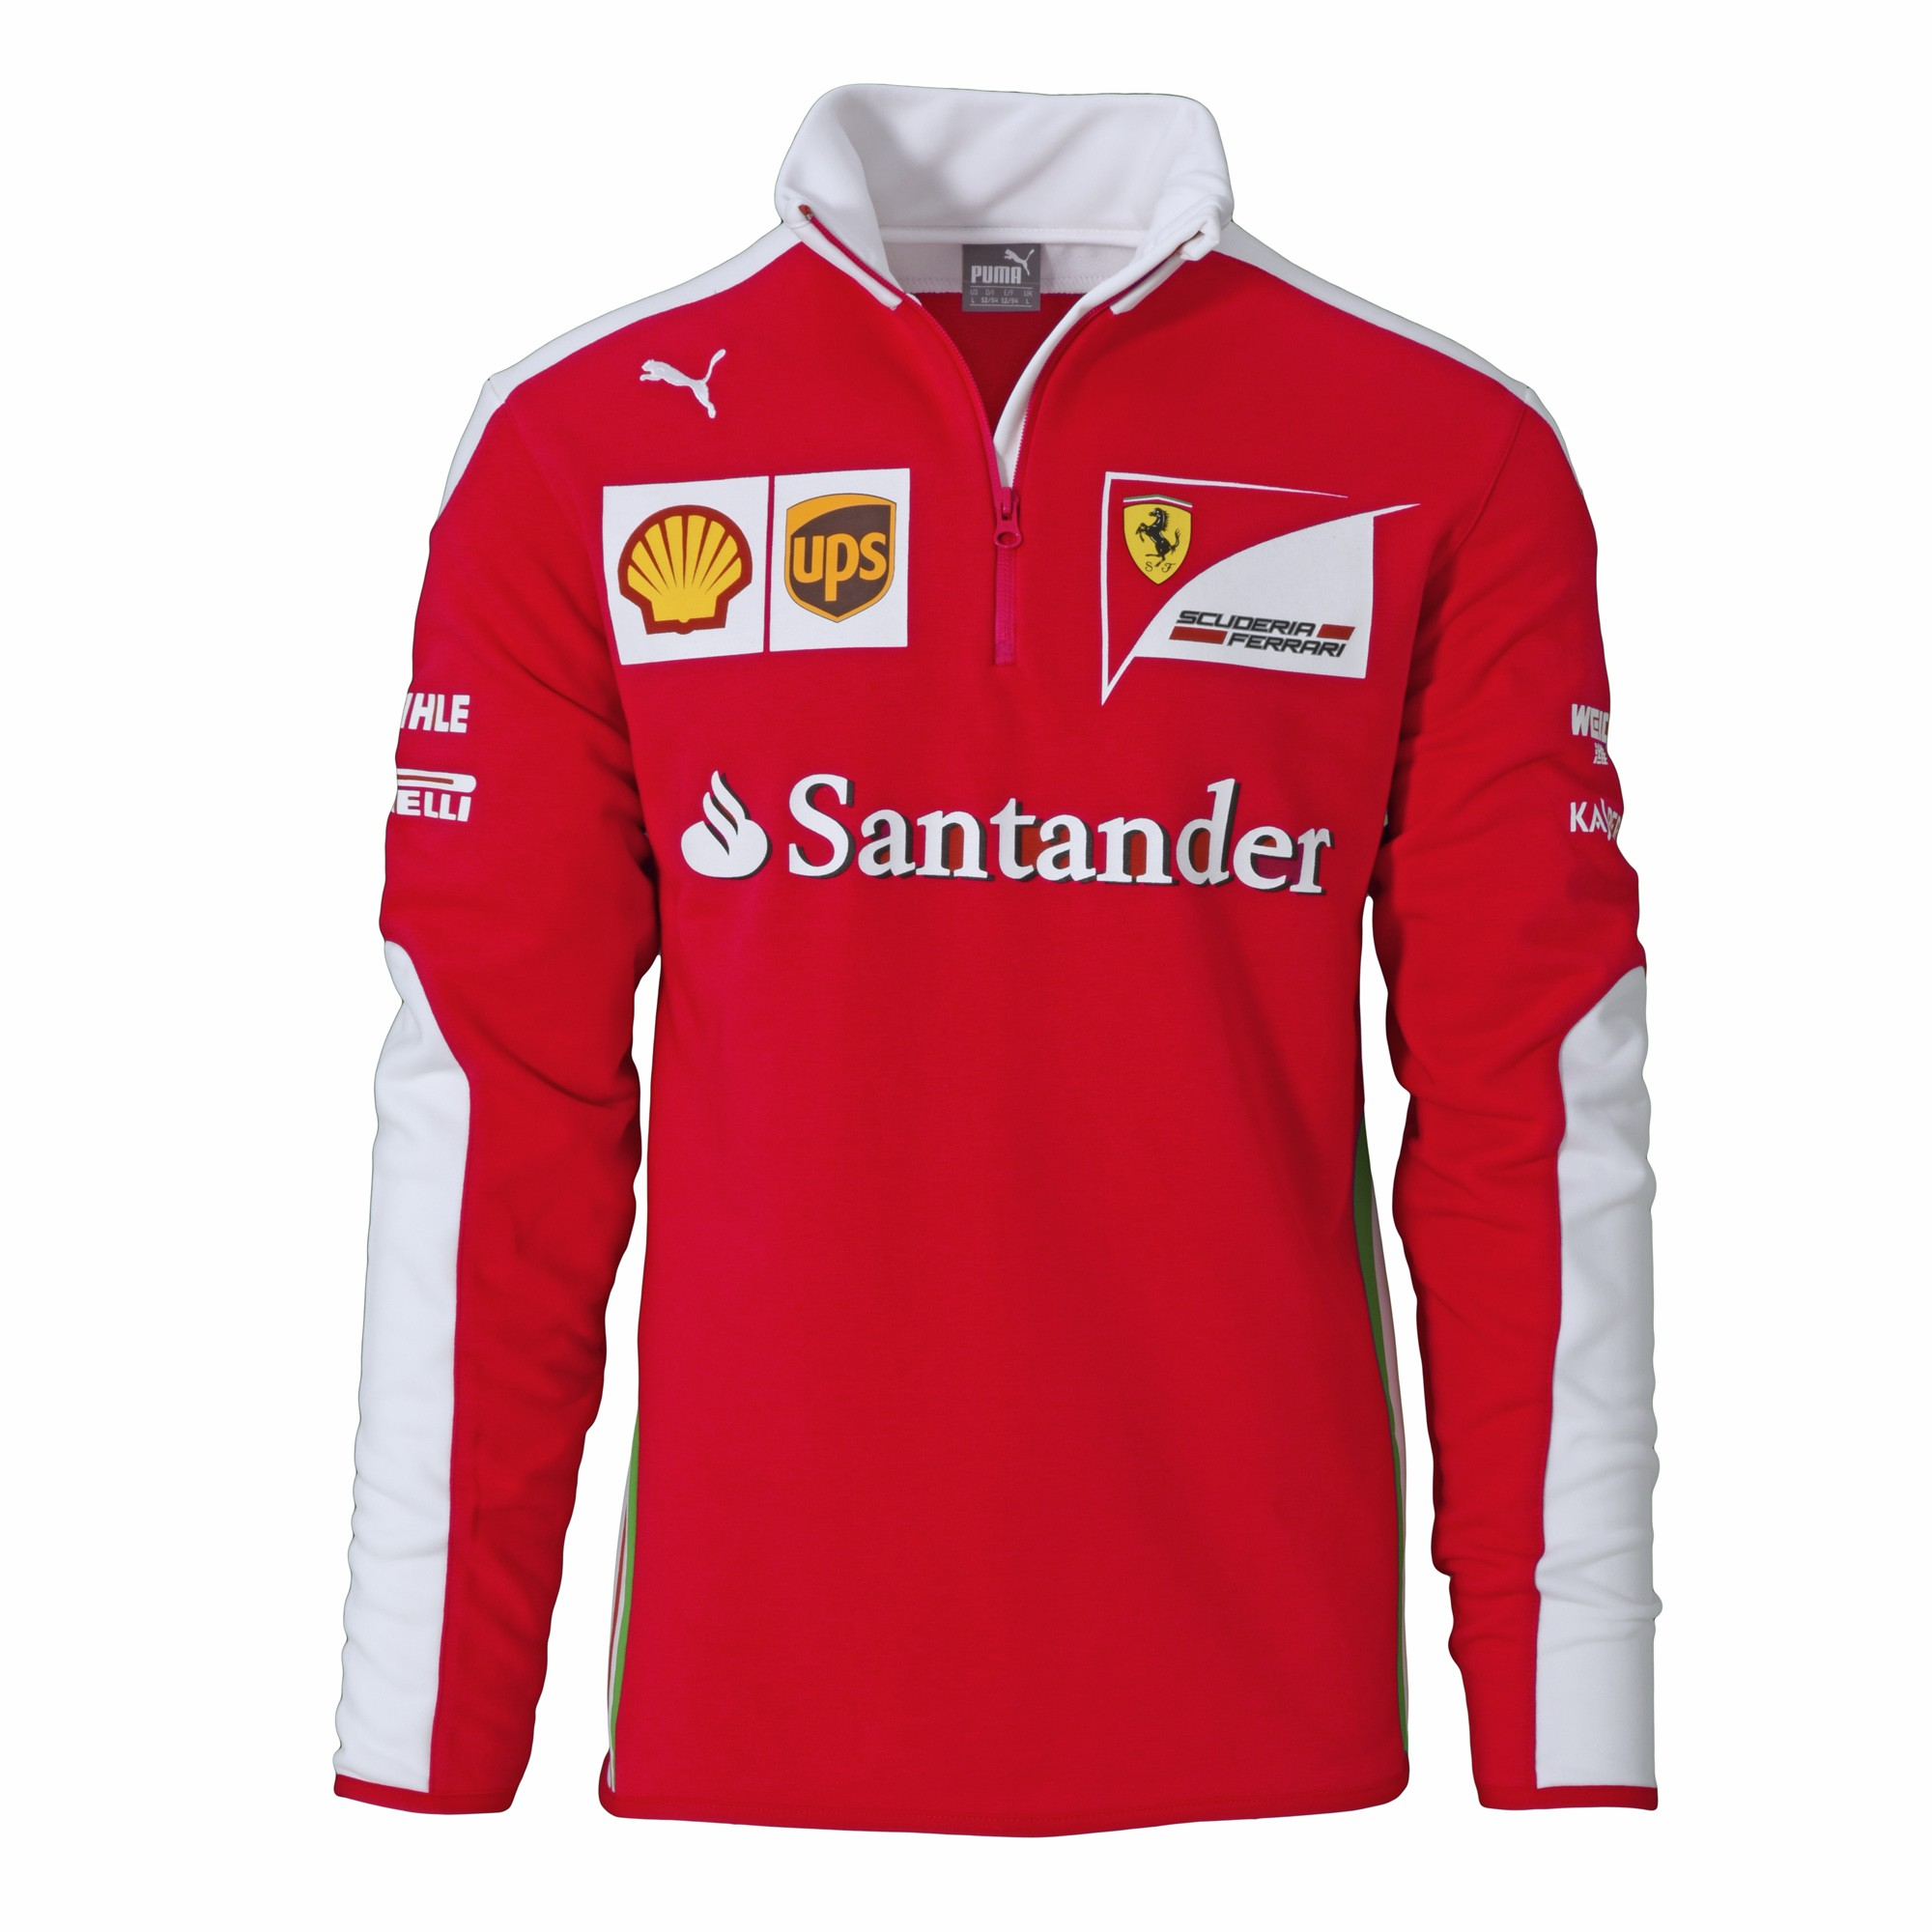 20a52bb4c344 2016 Ferrari Formula One F1 Mens SF Team Half Zip Fleece Sweatshirt Red